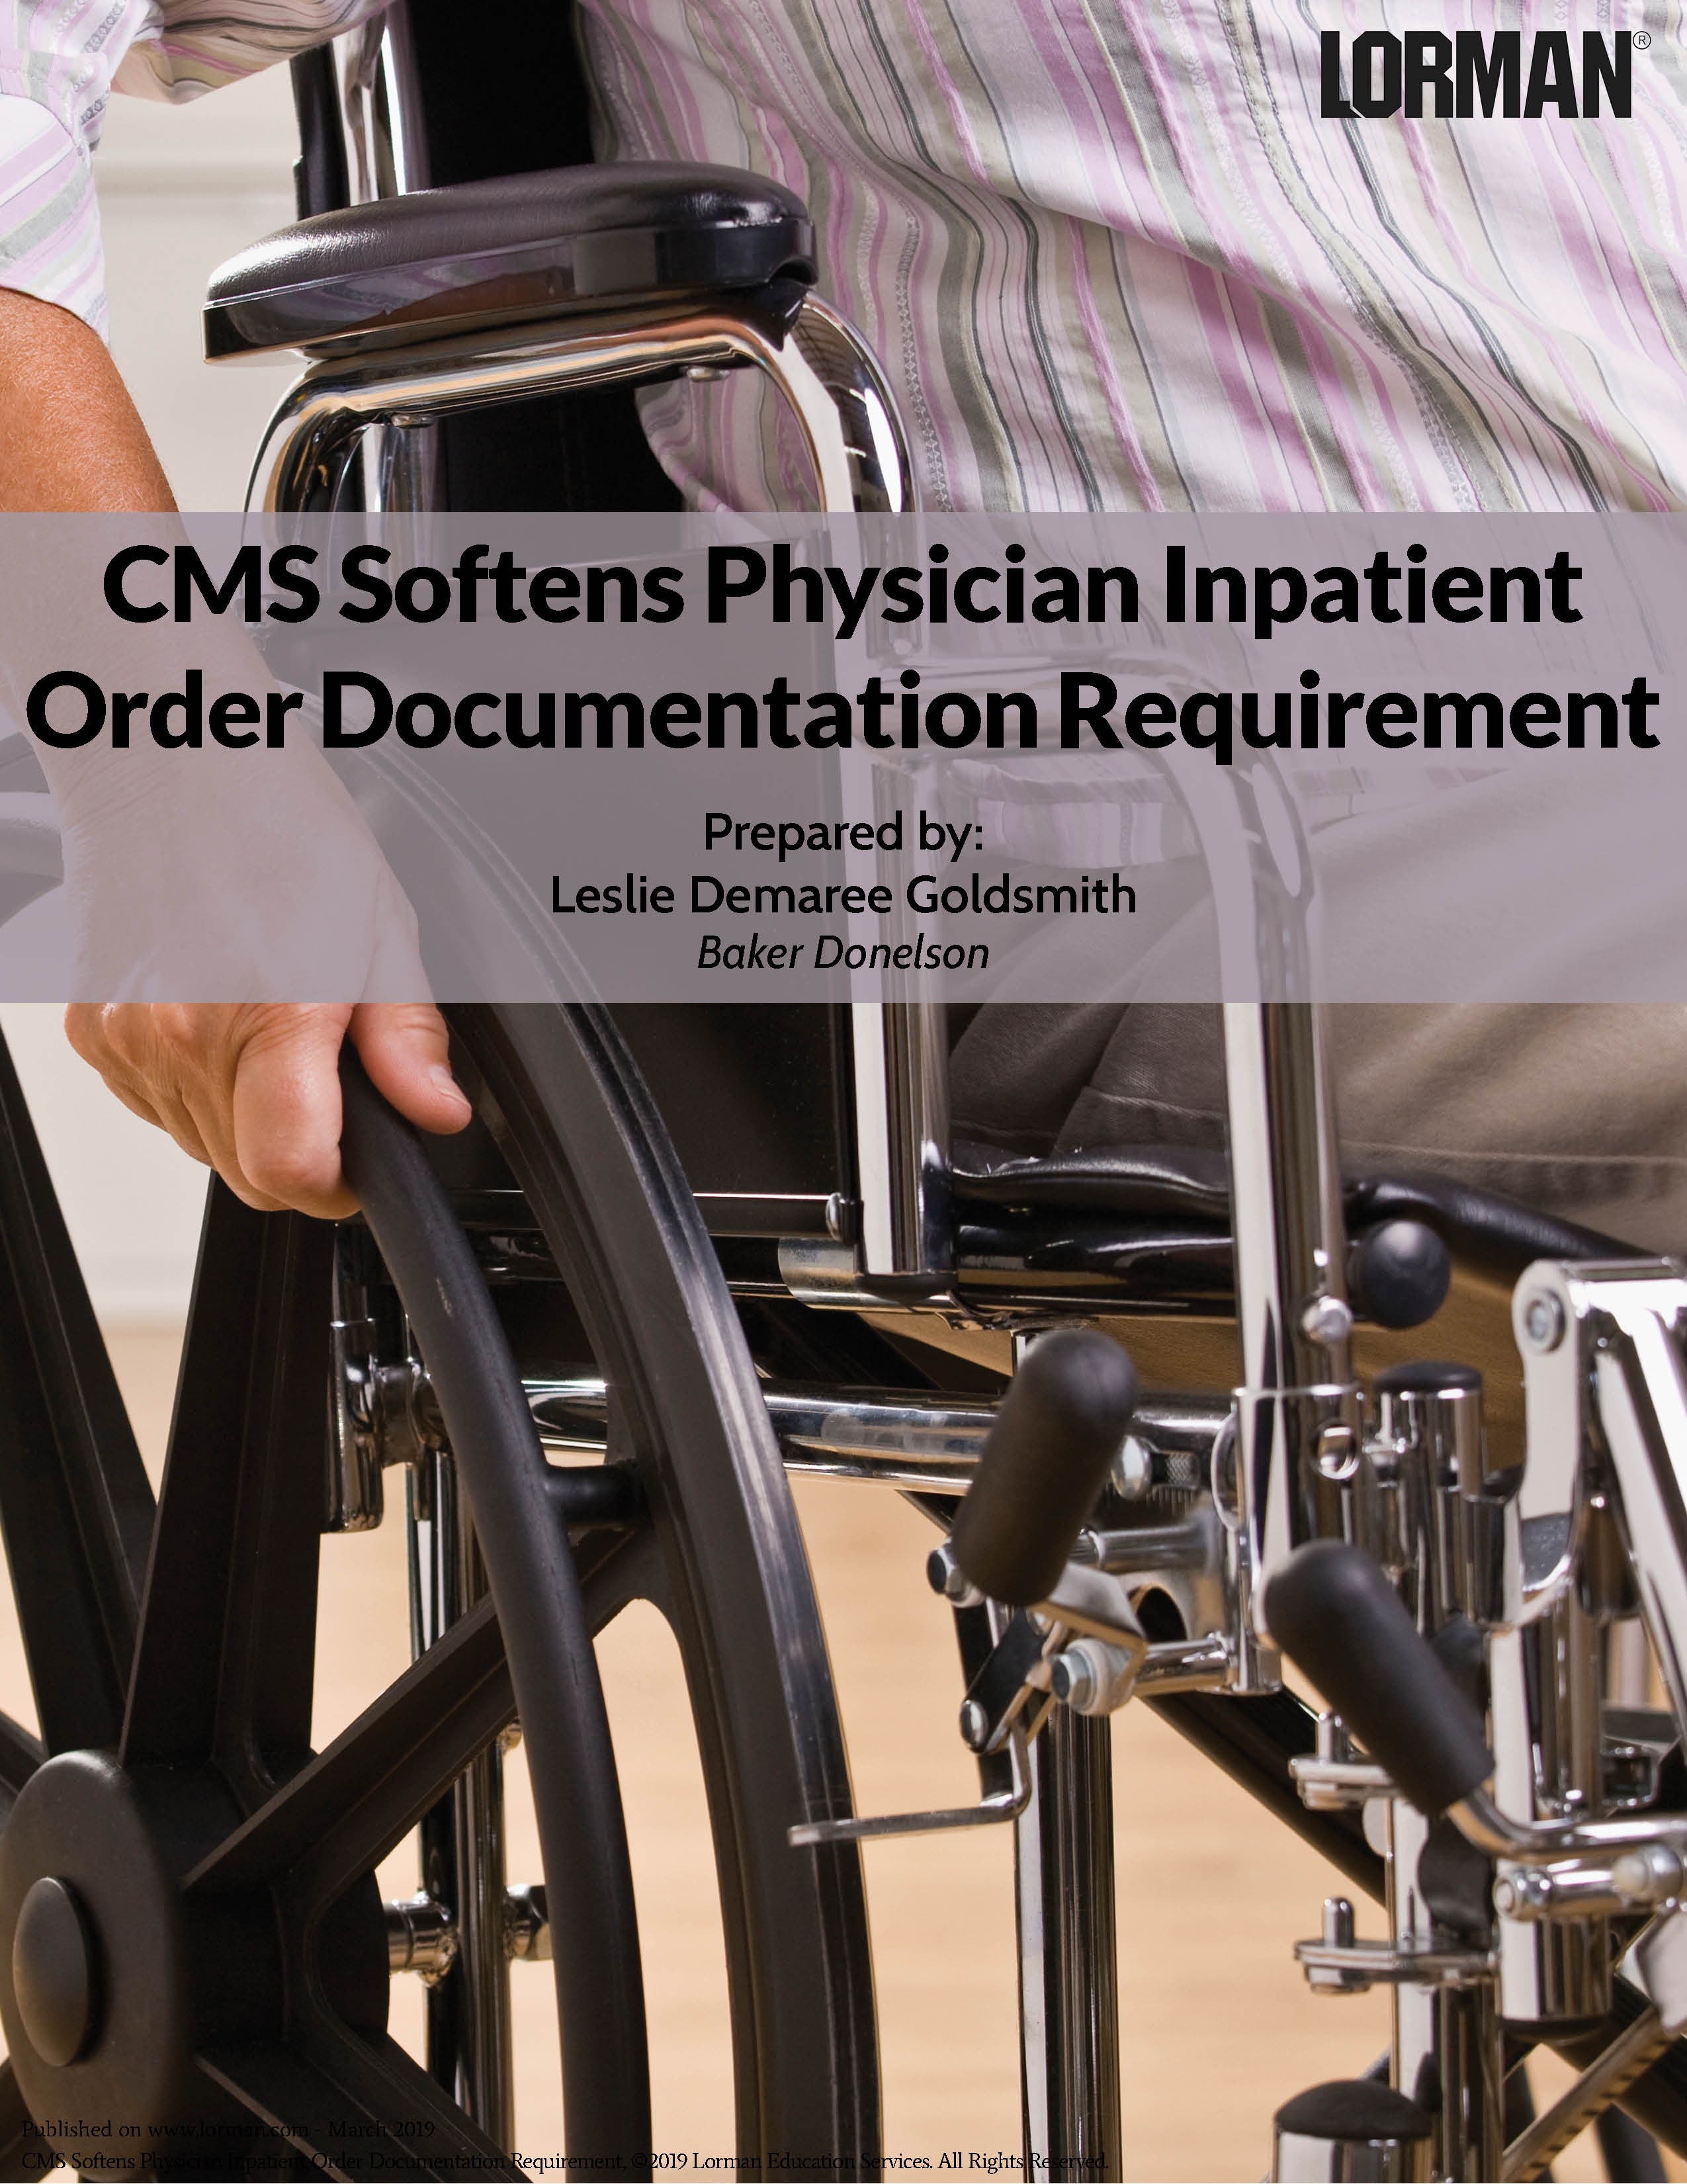 CMS Softens Physician Inpatient Order Documentation Requirement